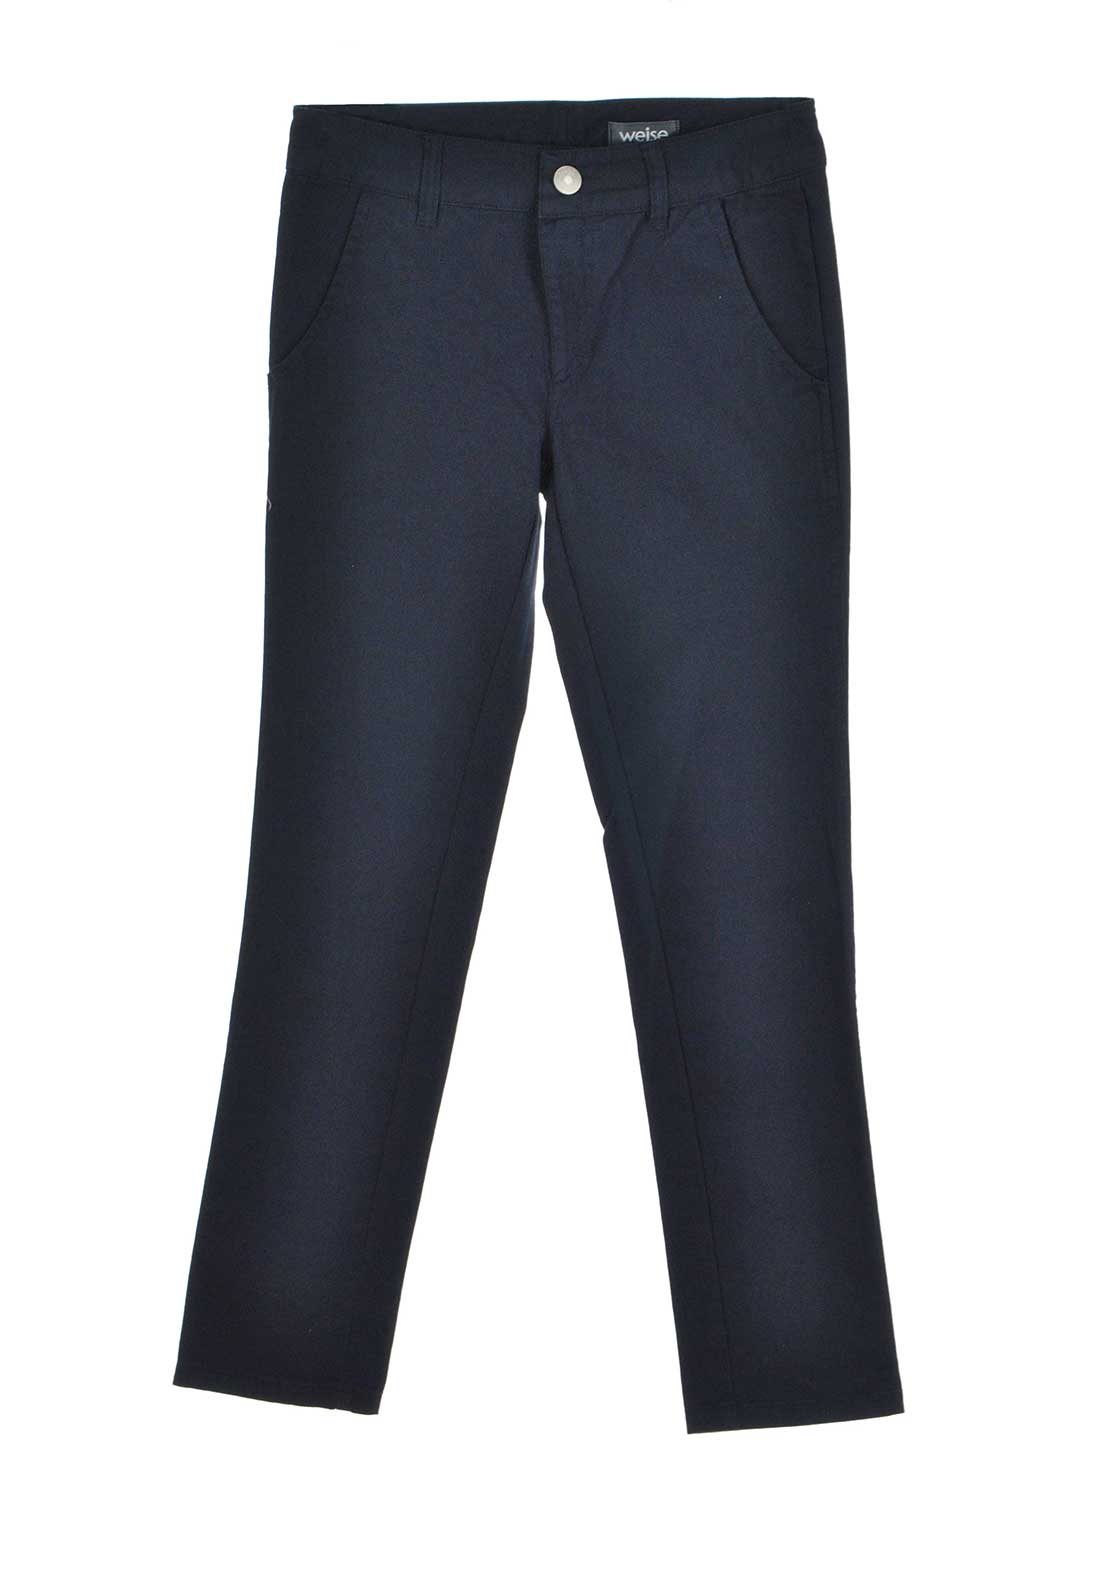 Weise Boys Slim Leg Twill Chino Trousers, Navy